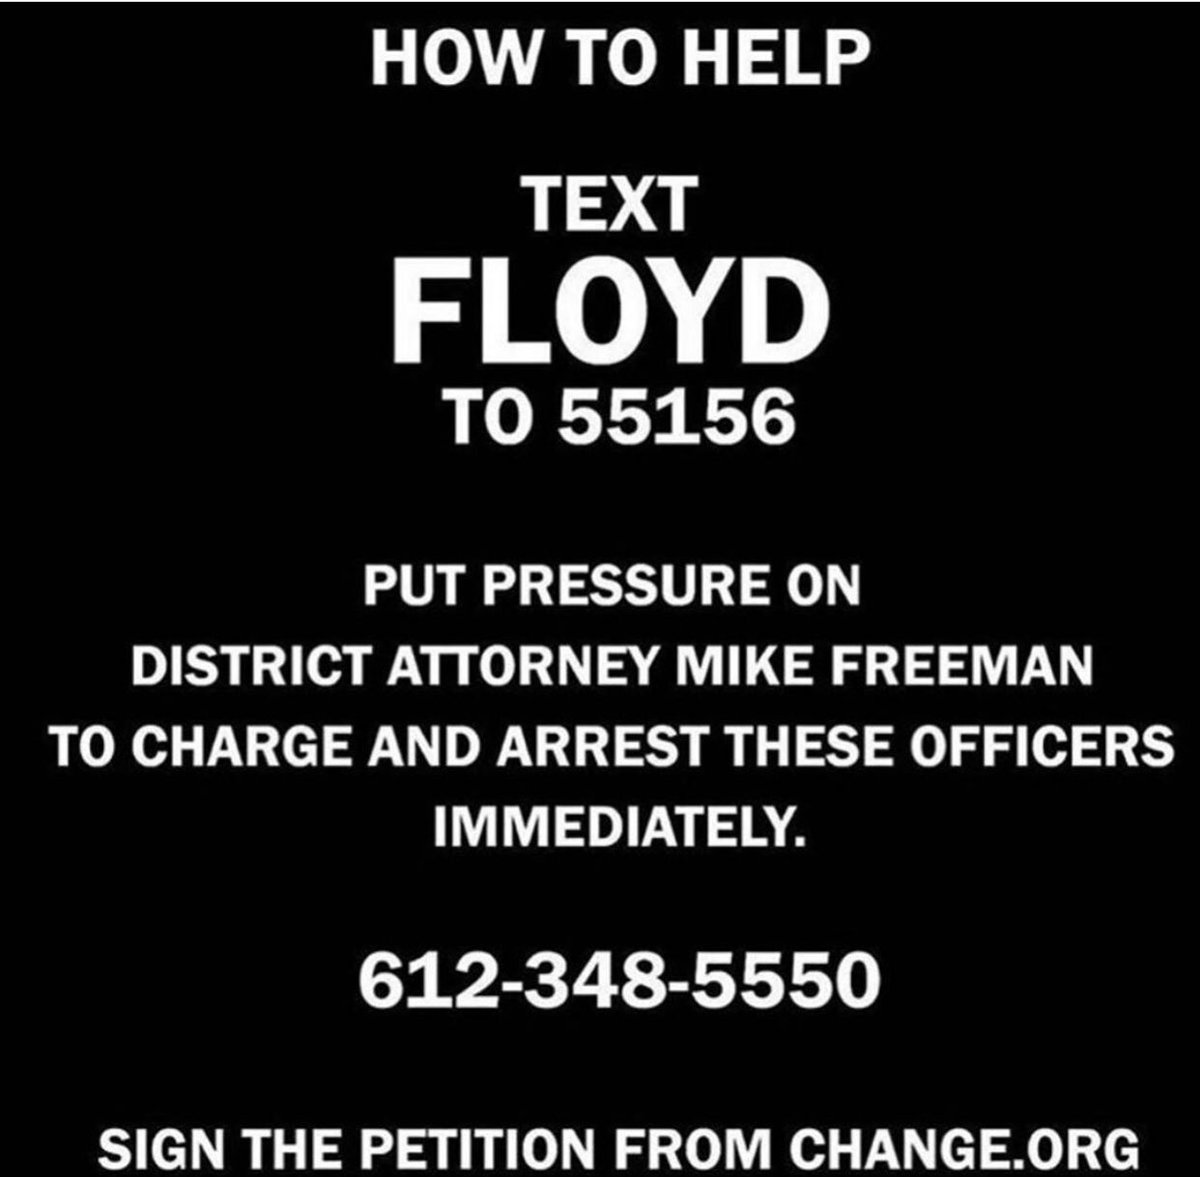 HELP CONVICT THESE KILLERS !! Text FLOYD TO 55156 naoowww!!! 🙏🏾 #JusticeForGeorgeFloyd 💔 😔